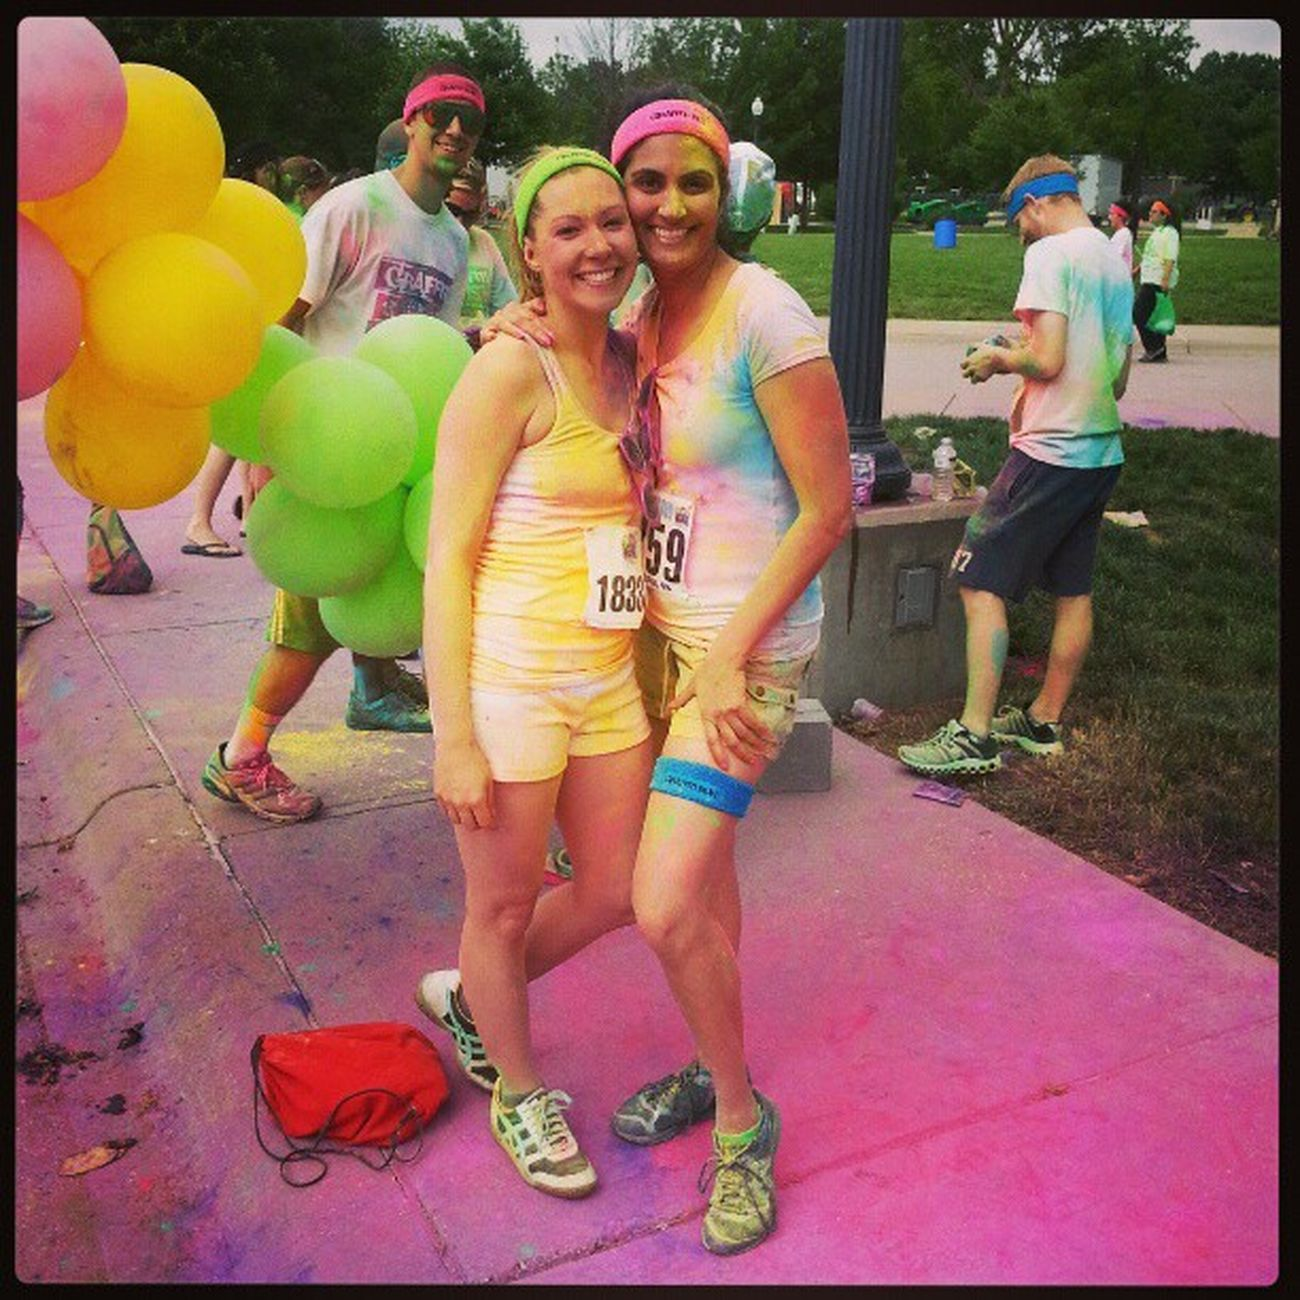 Graffiti run! Photobomb Lotsofcolor 5k